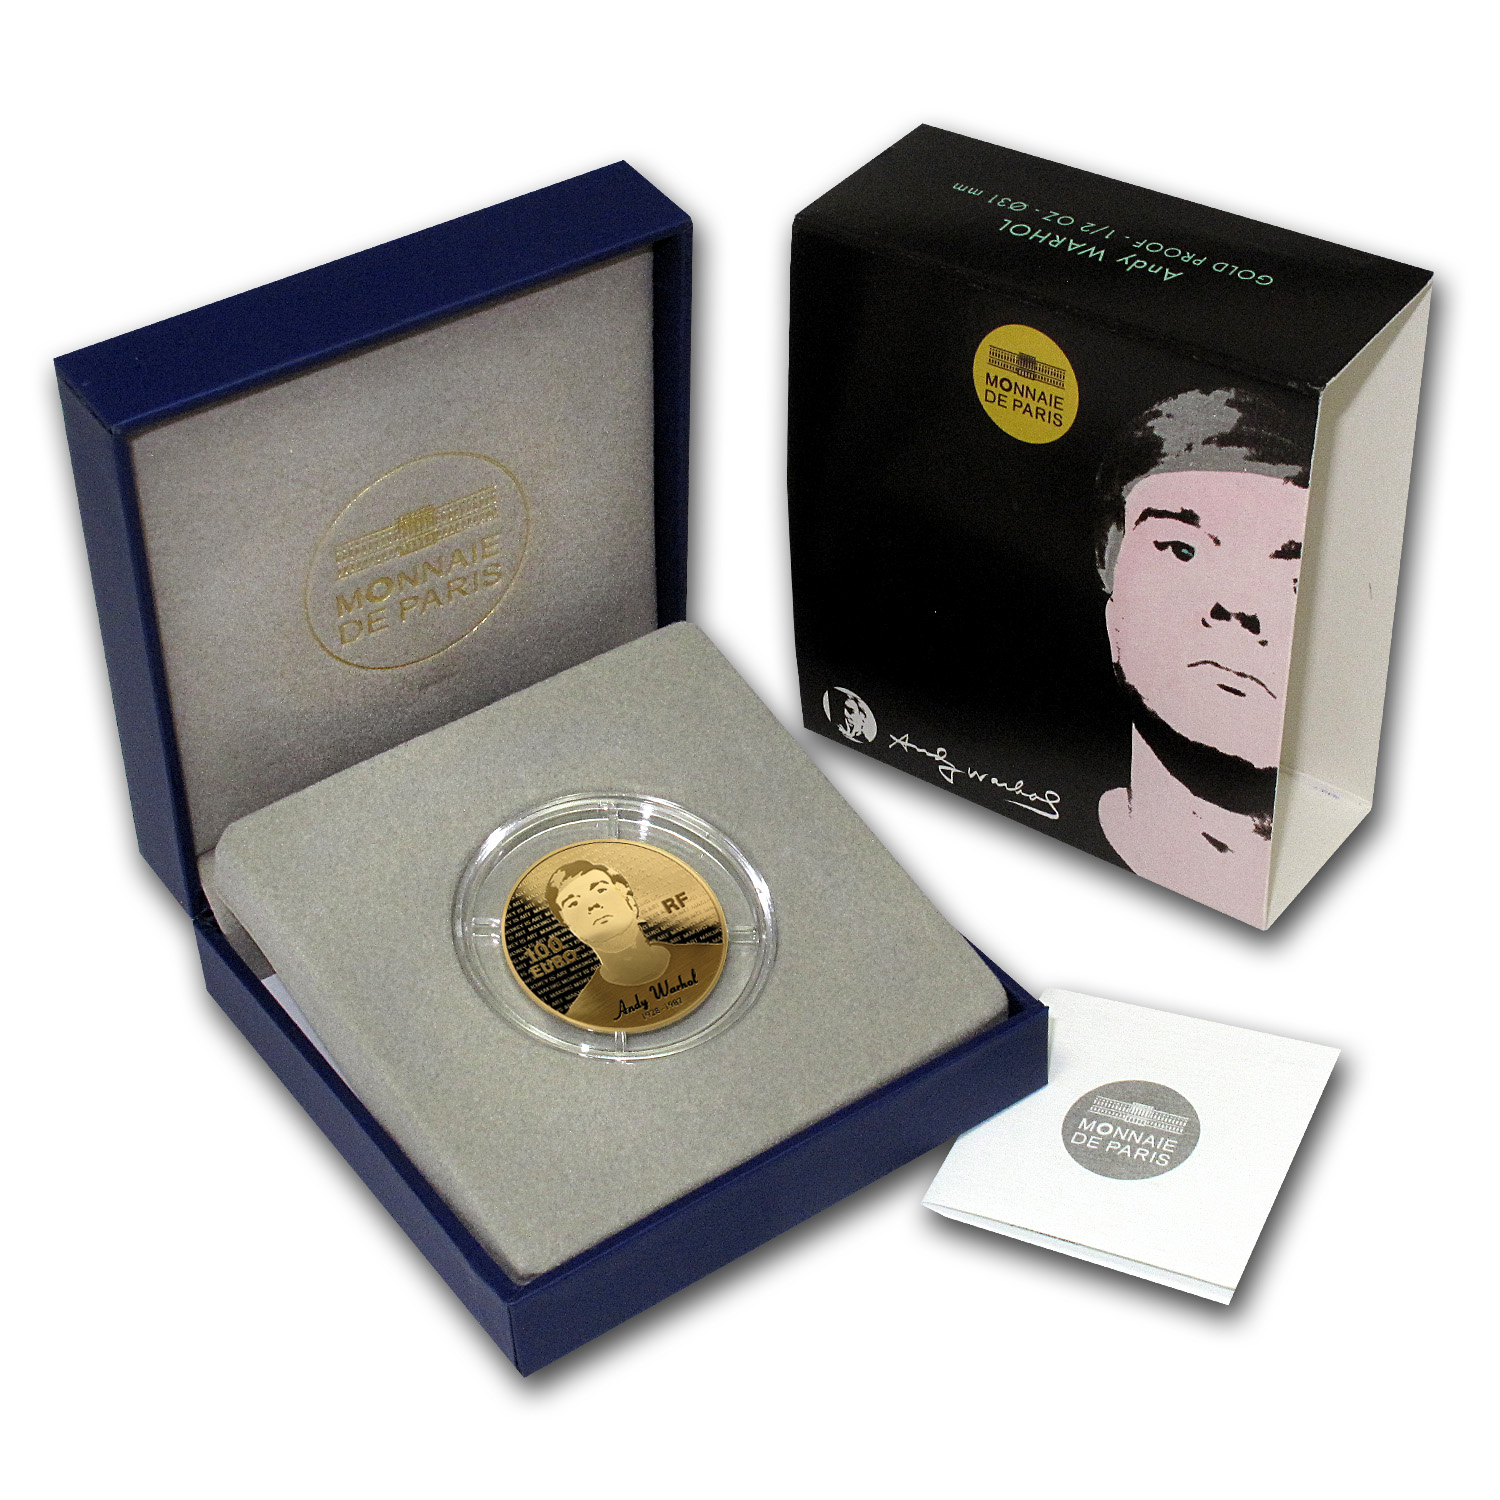 2011 1/2 oz Gold Proof Series of French Painters - Andy Warhol